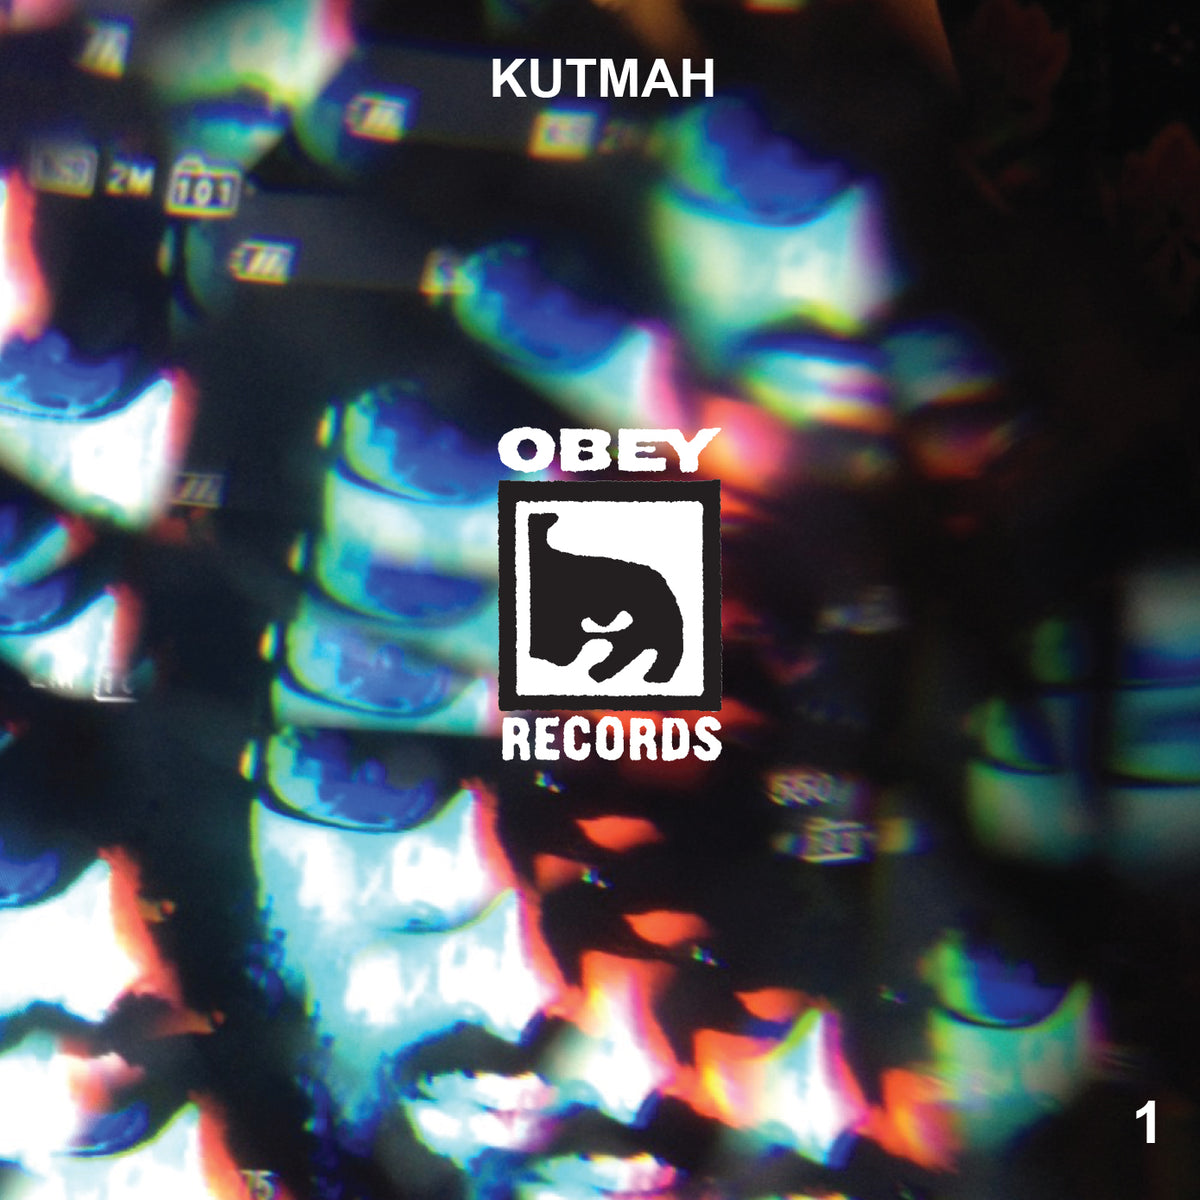 OBEY Records Ep 1: Kutmah